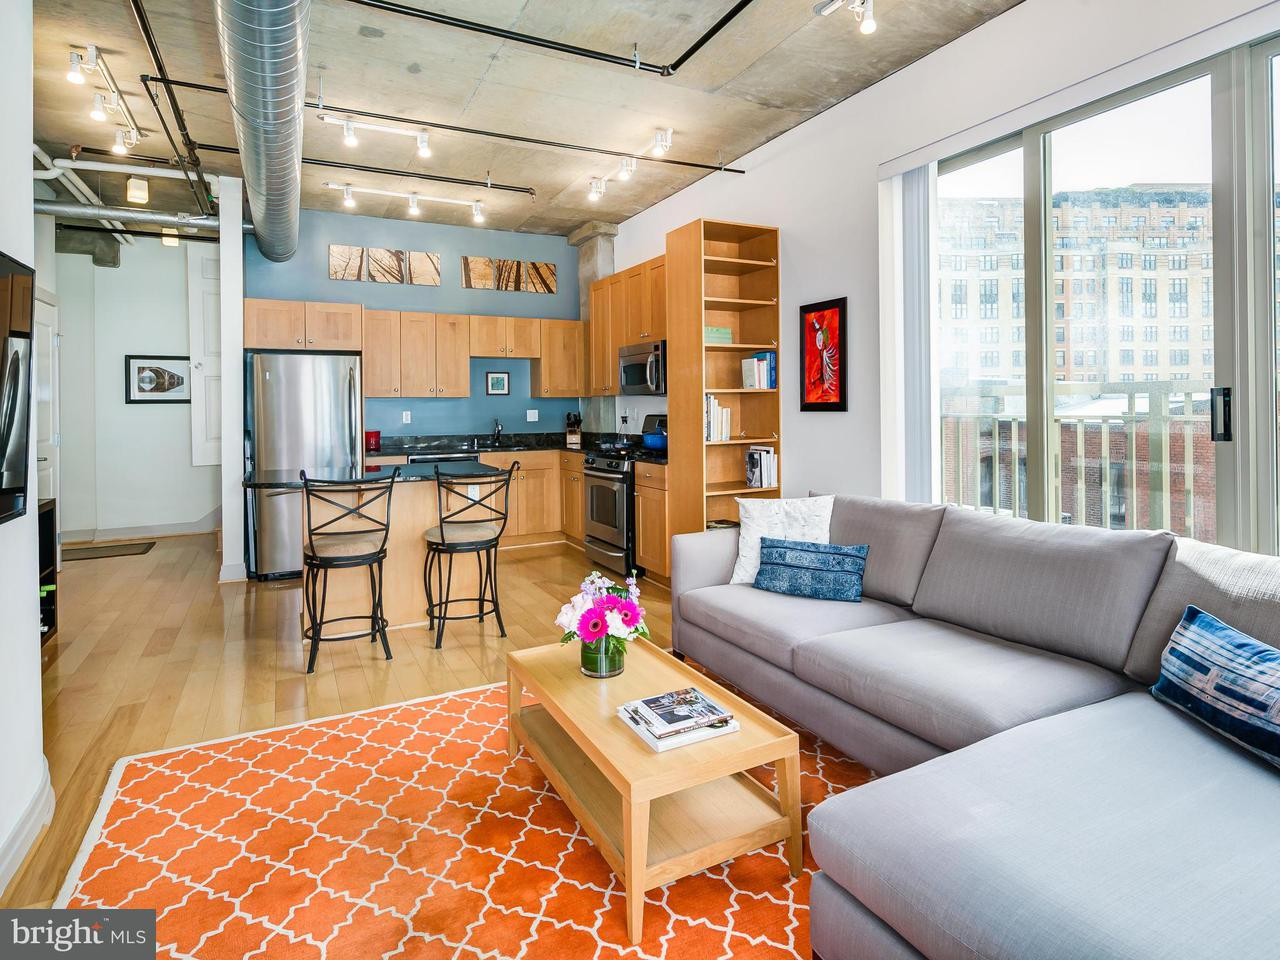 Townhouse for Sale at 301 MASSACHUSETTS AVE NW #507 301 MASSACHUSETTS AVE NW #507 Washington, District Of Columbia 20001 United States